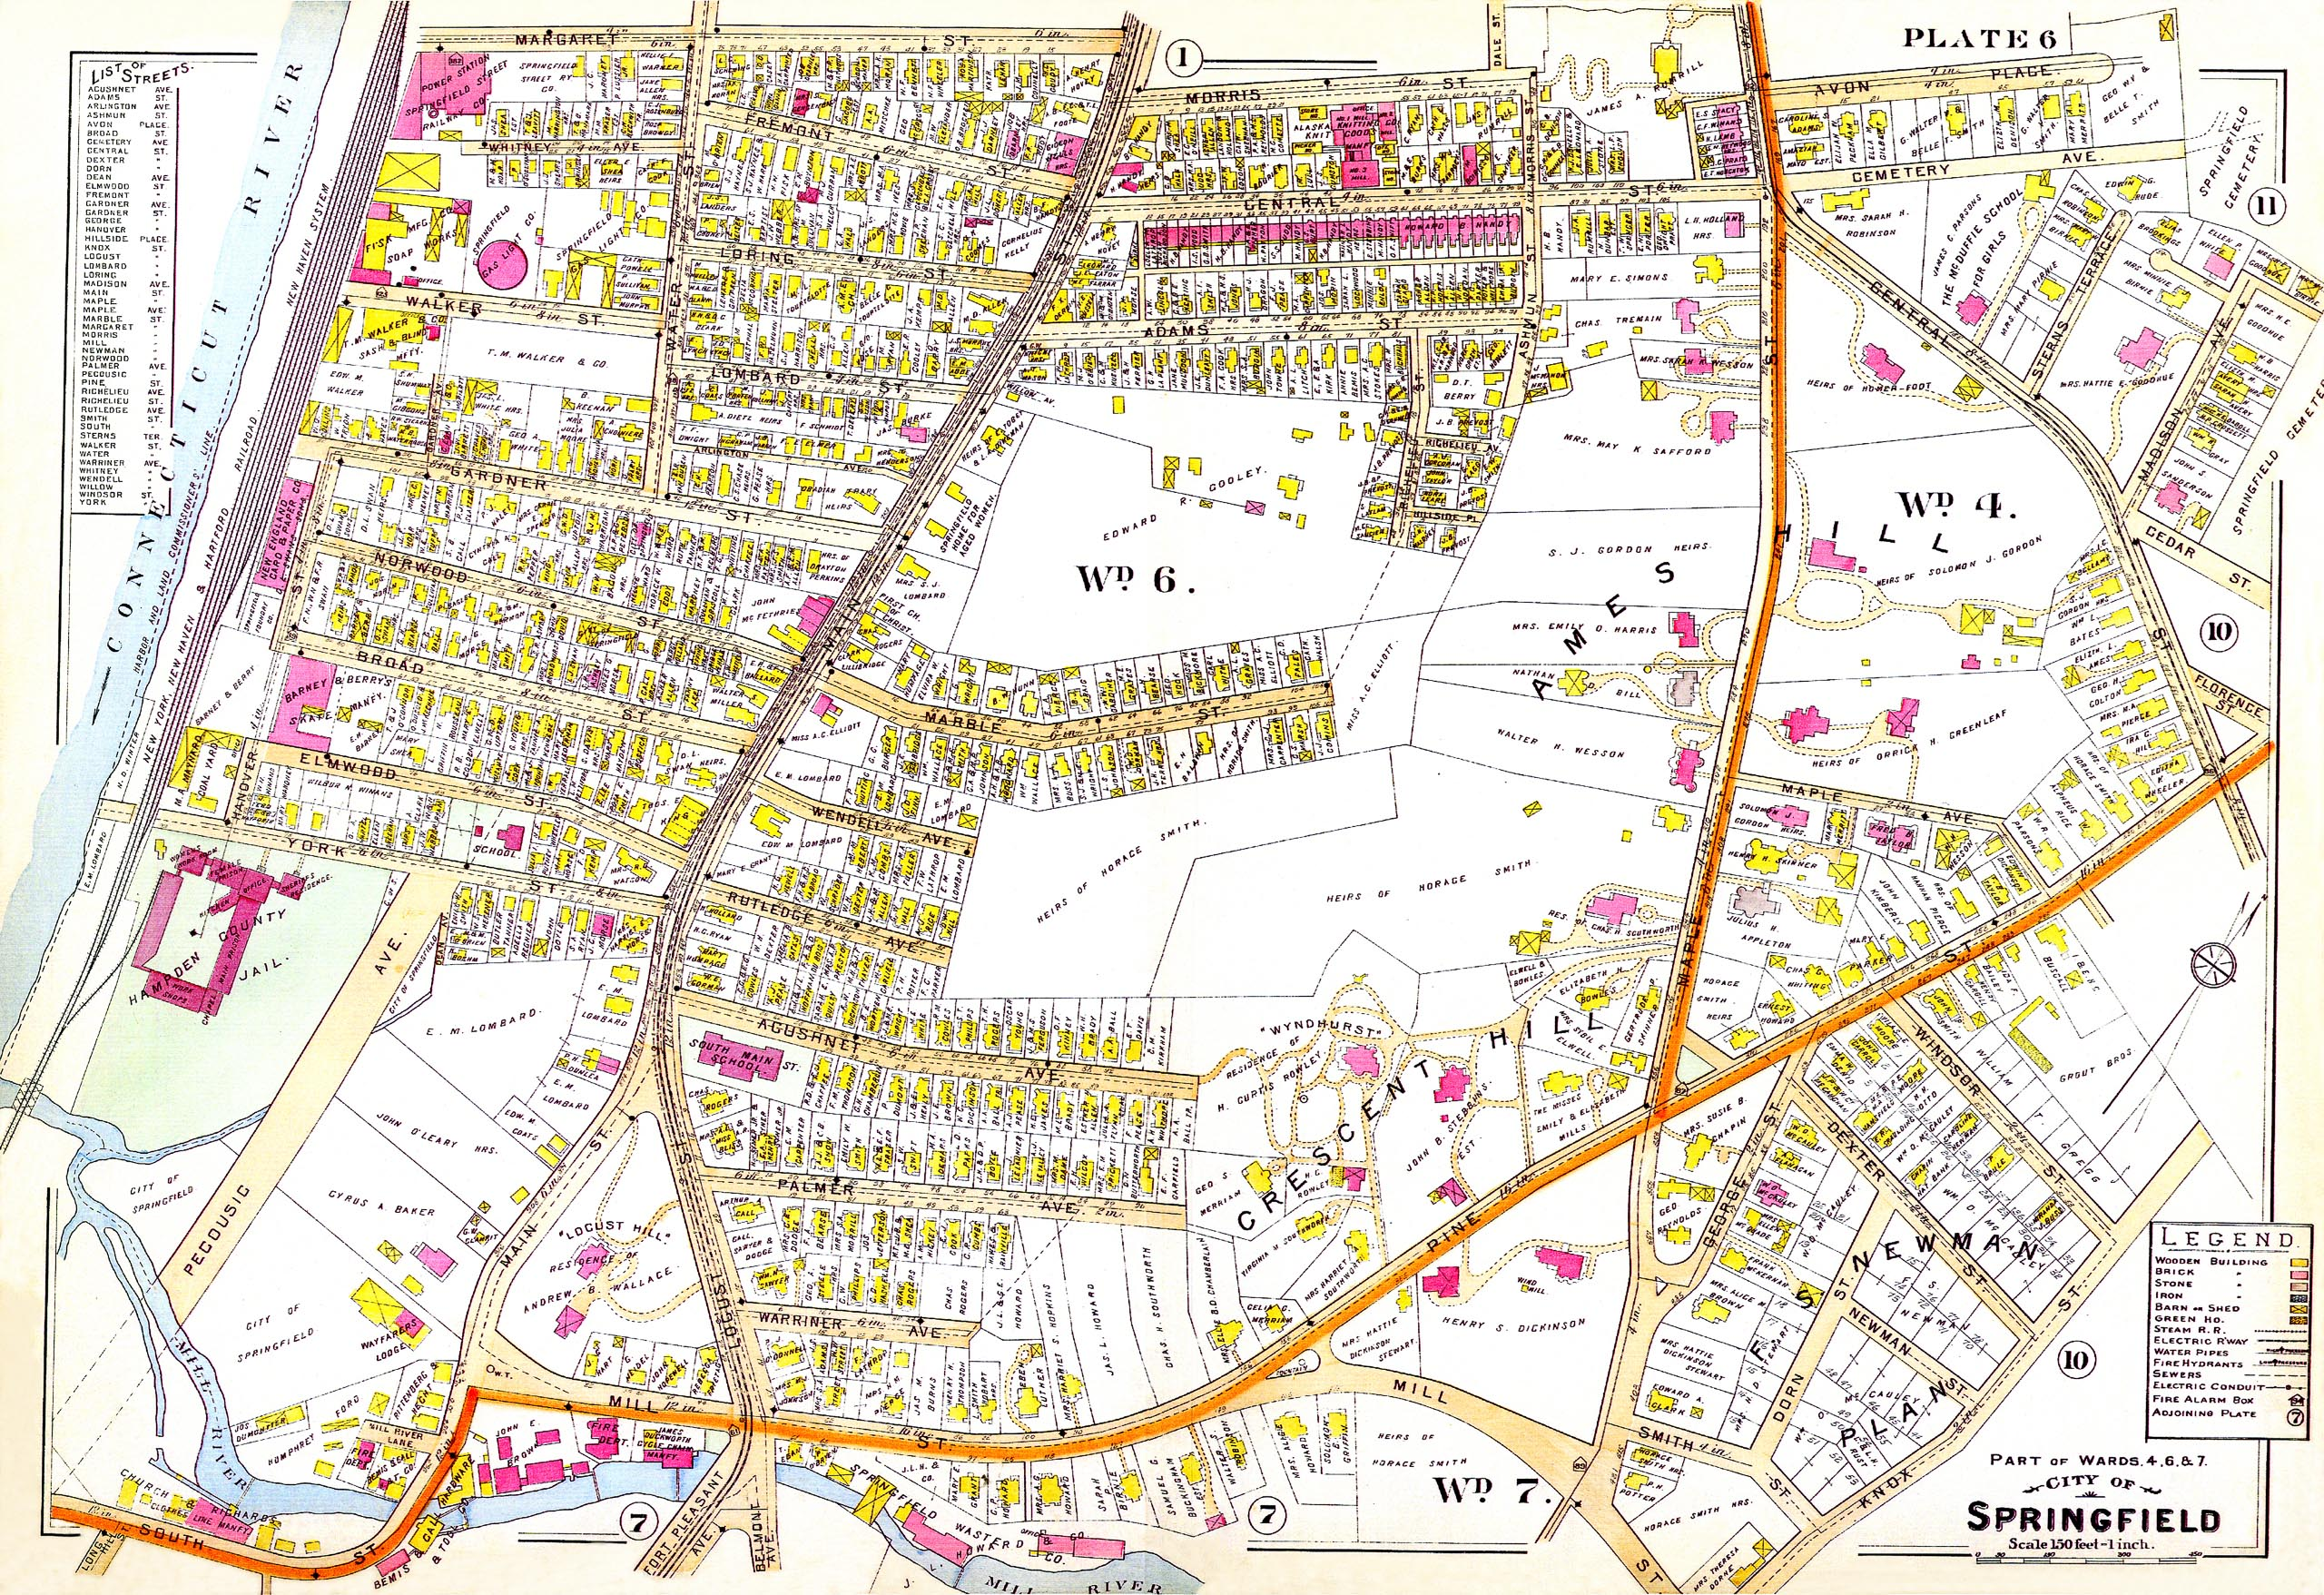 Parts of Wards 4, 6 & 7, City of Springfield